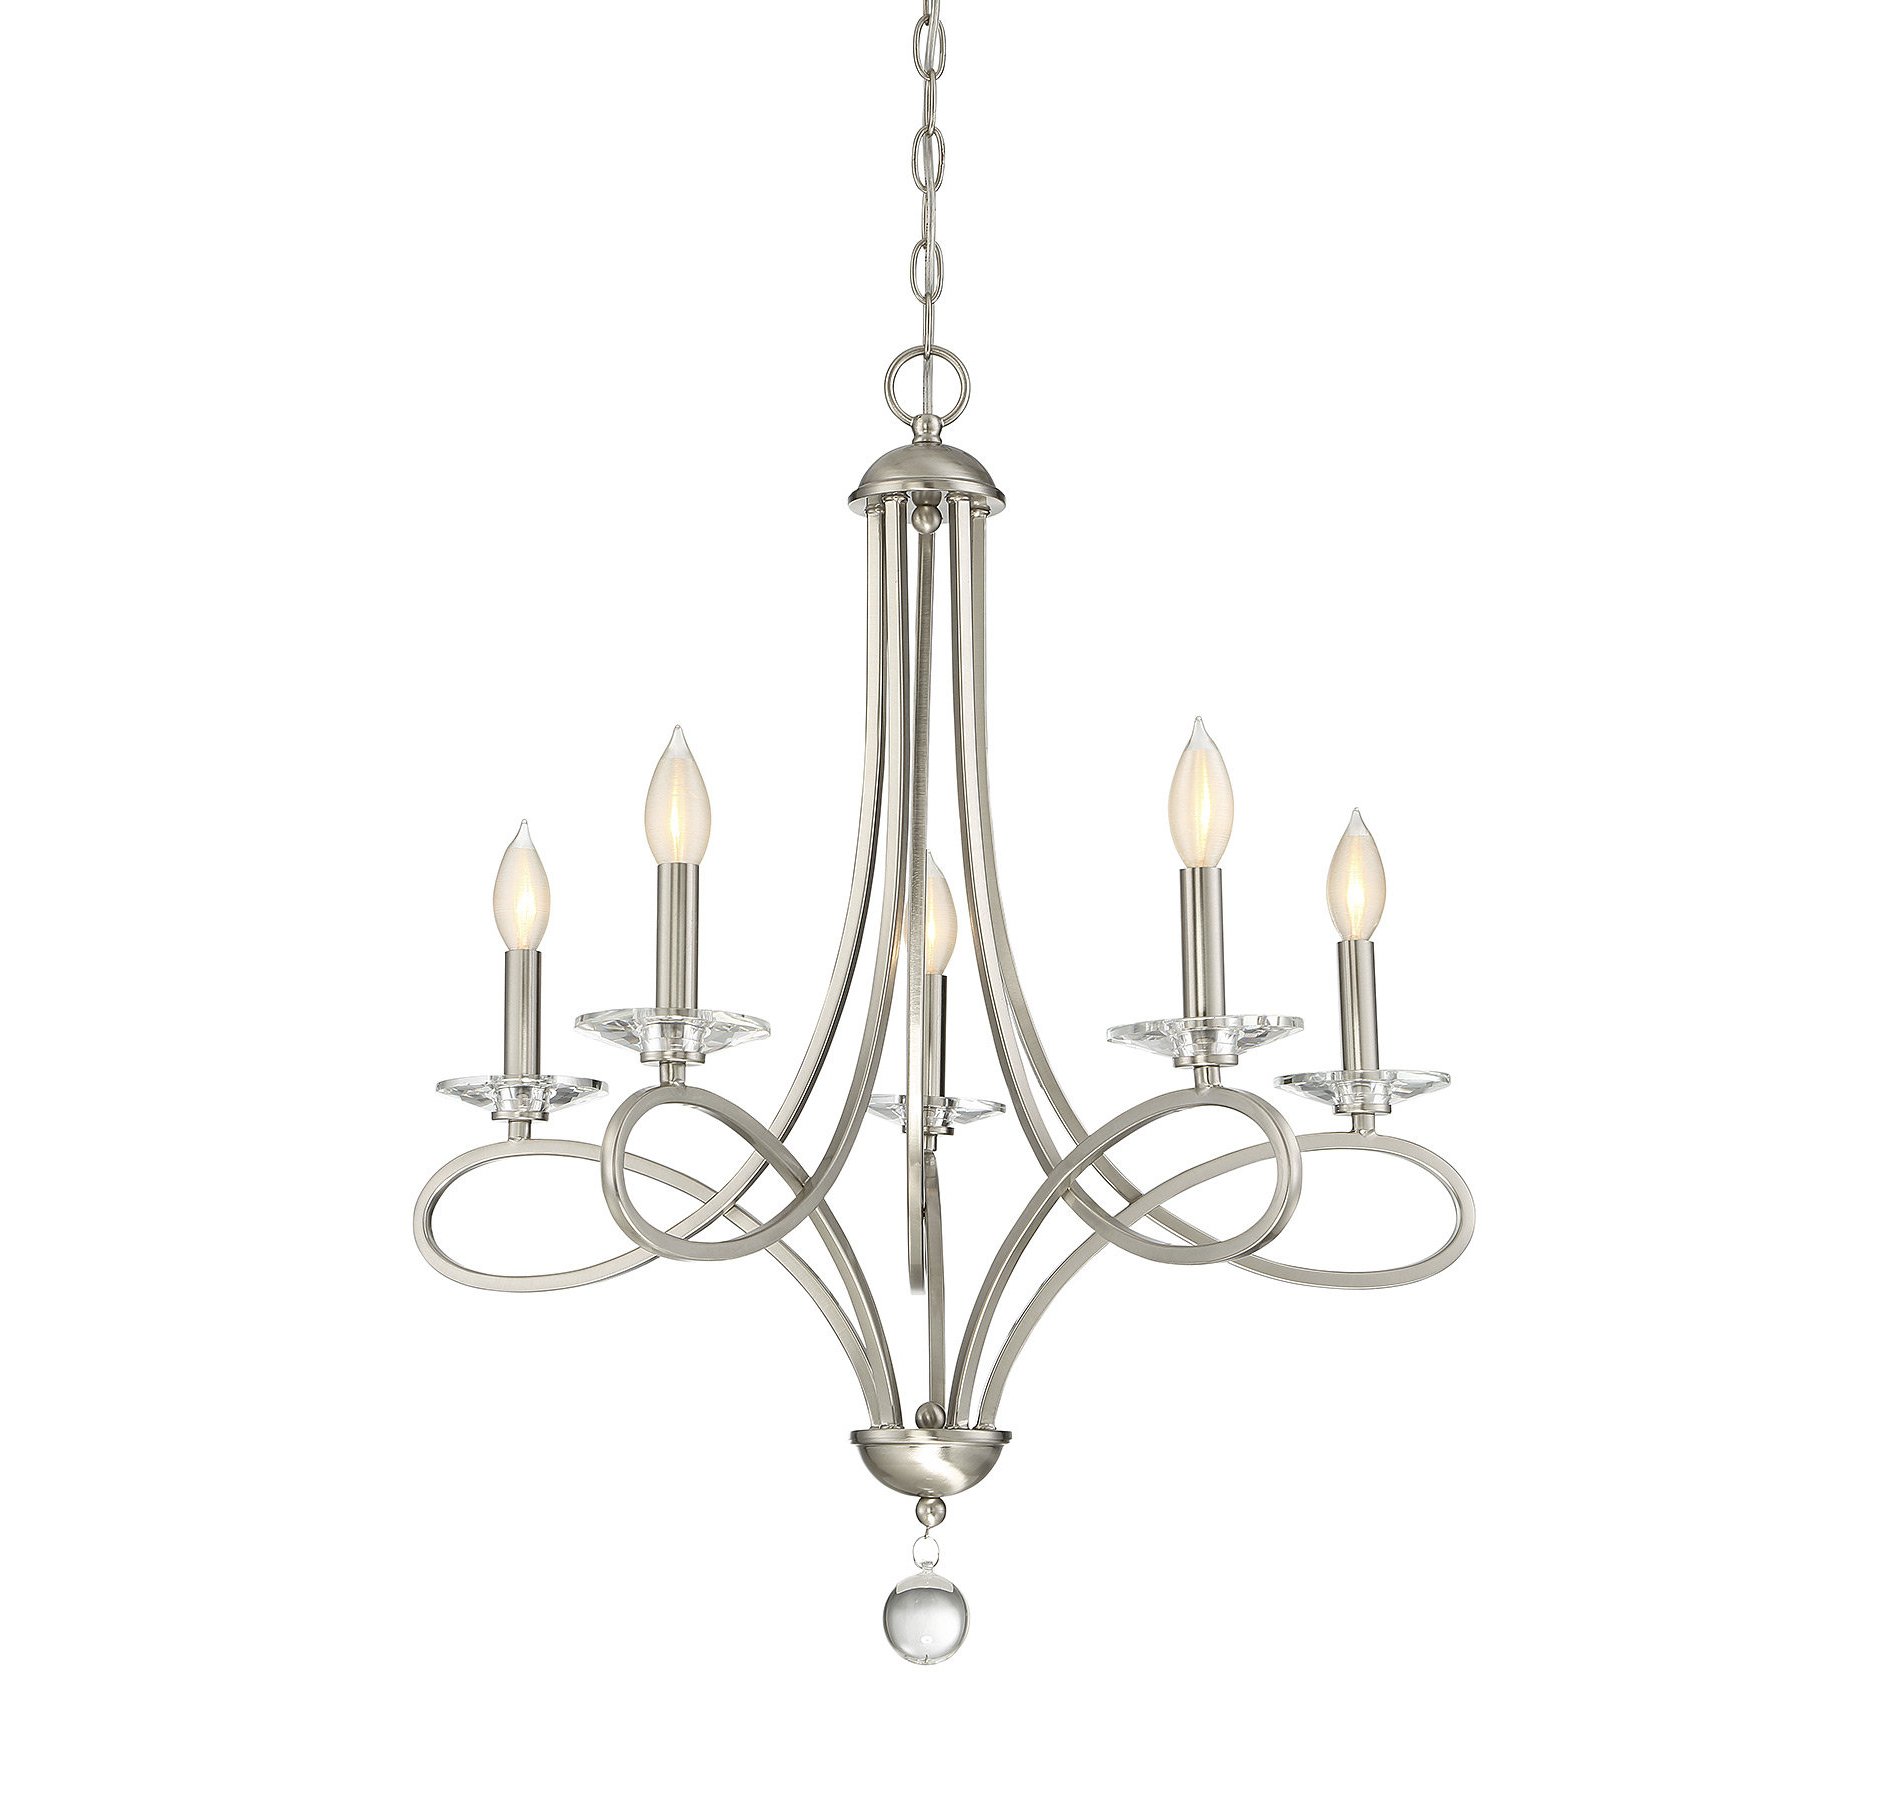 Hesse 5 Light Candle Style Chandeliers Within Most Up To Date Willa Arlo Interiors Berger 5 Light Candle Style Chandelier (View 6 of 25)